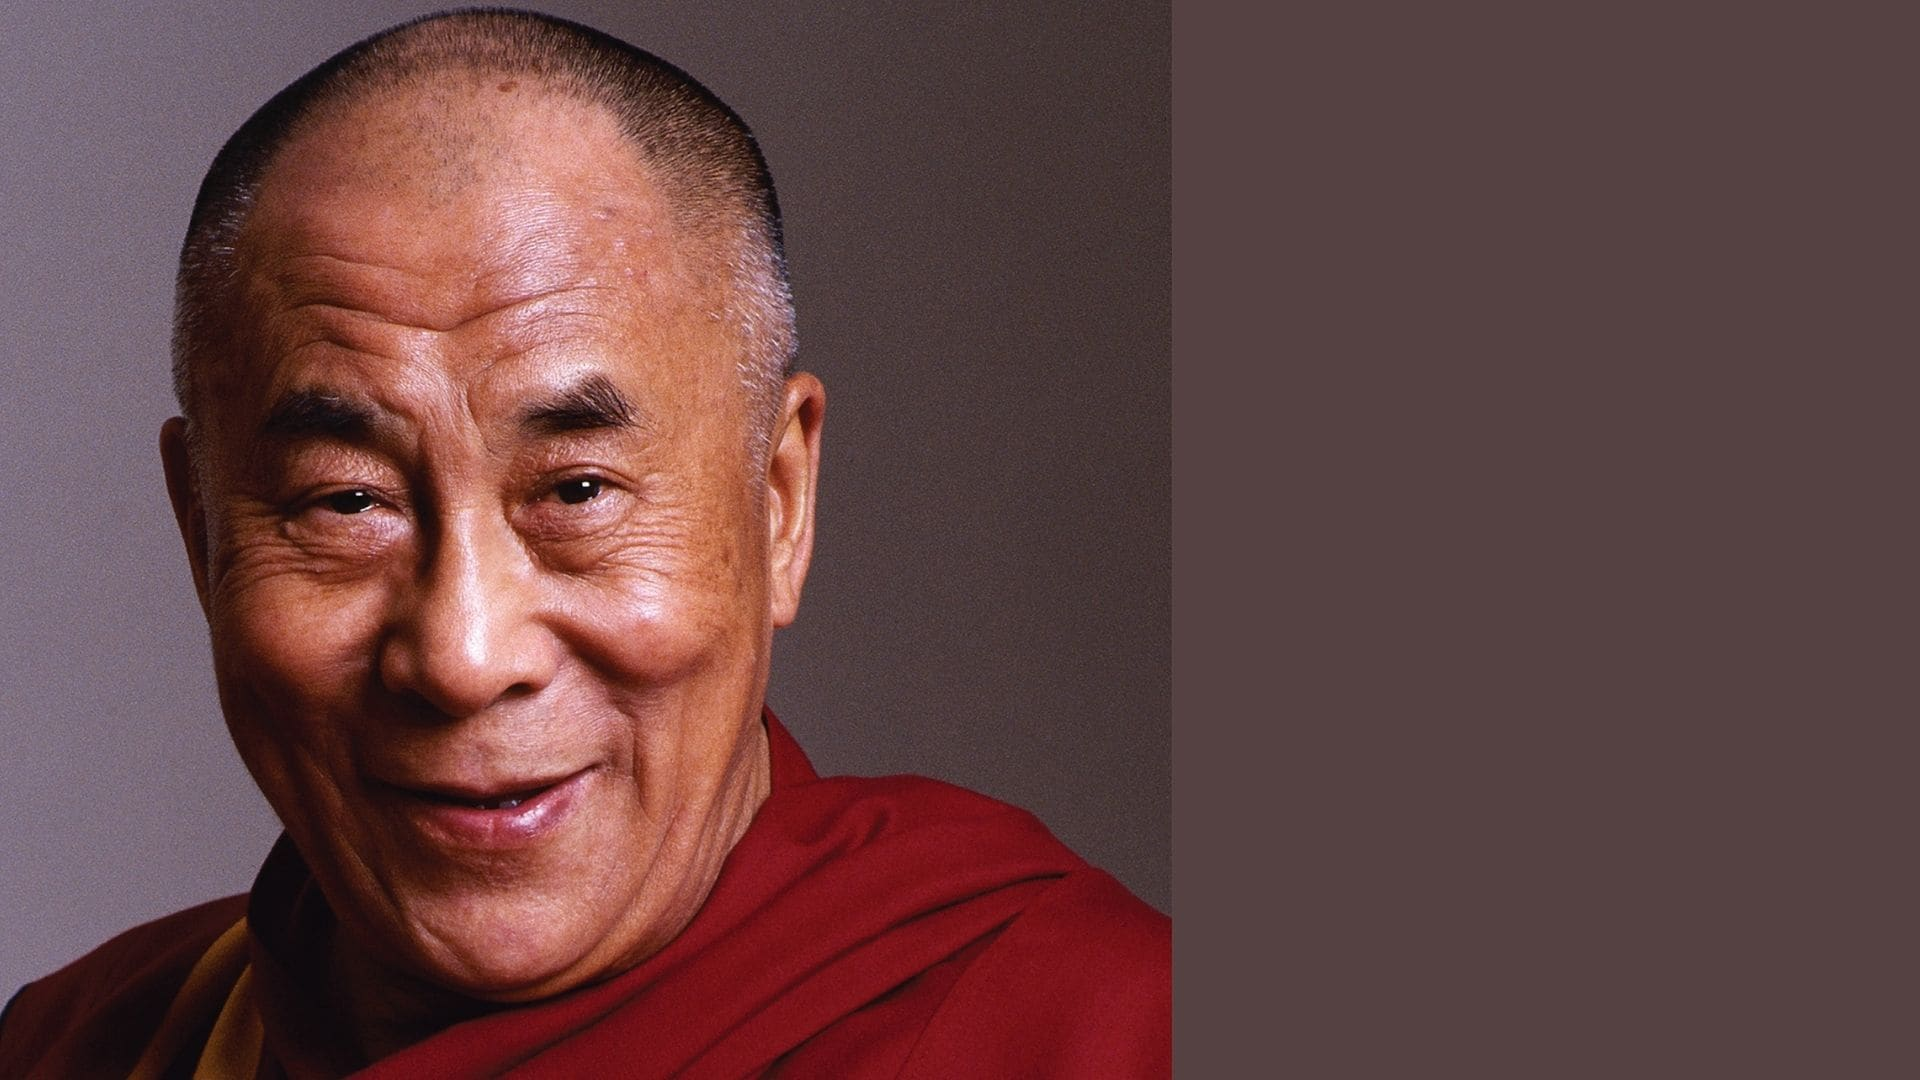 In an illustrated biography, Tenzin Geyche Tethong looks at Dalai Lama's perilous journey from Tibet to India